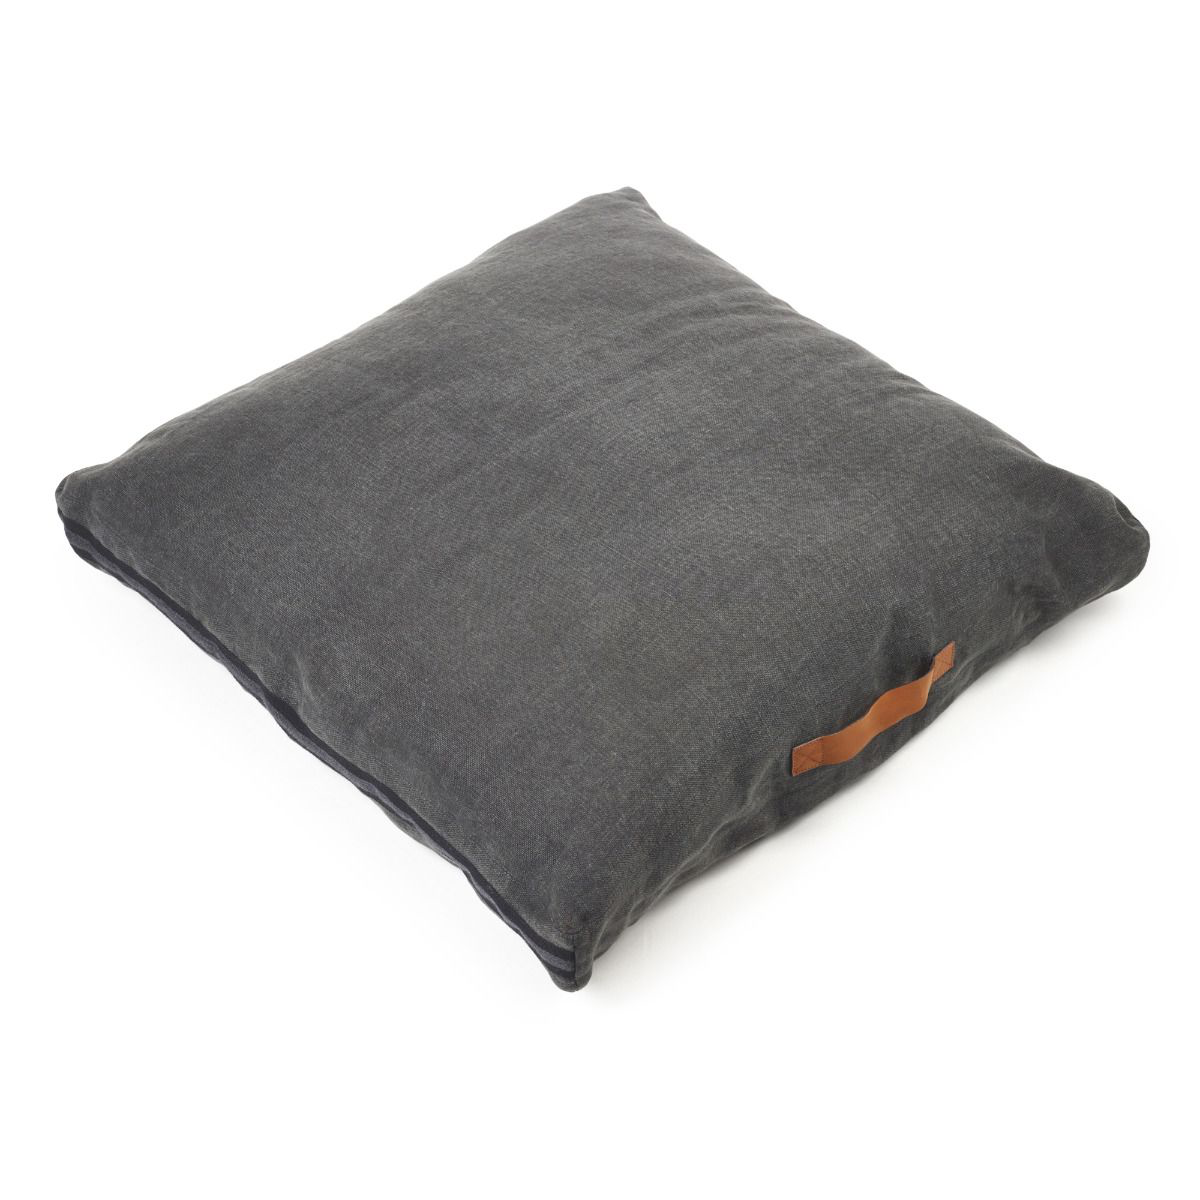 rand floor cushion, libeco, accessories | pillows and cushions, - adorn.house